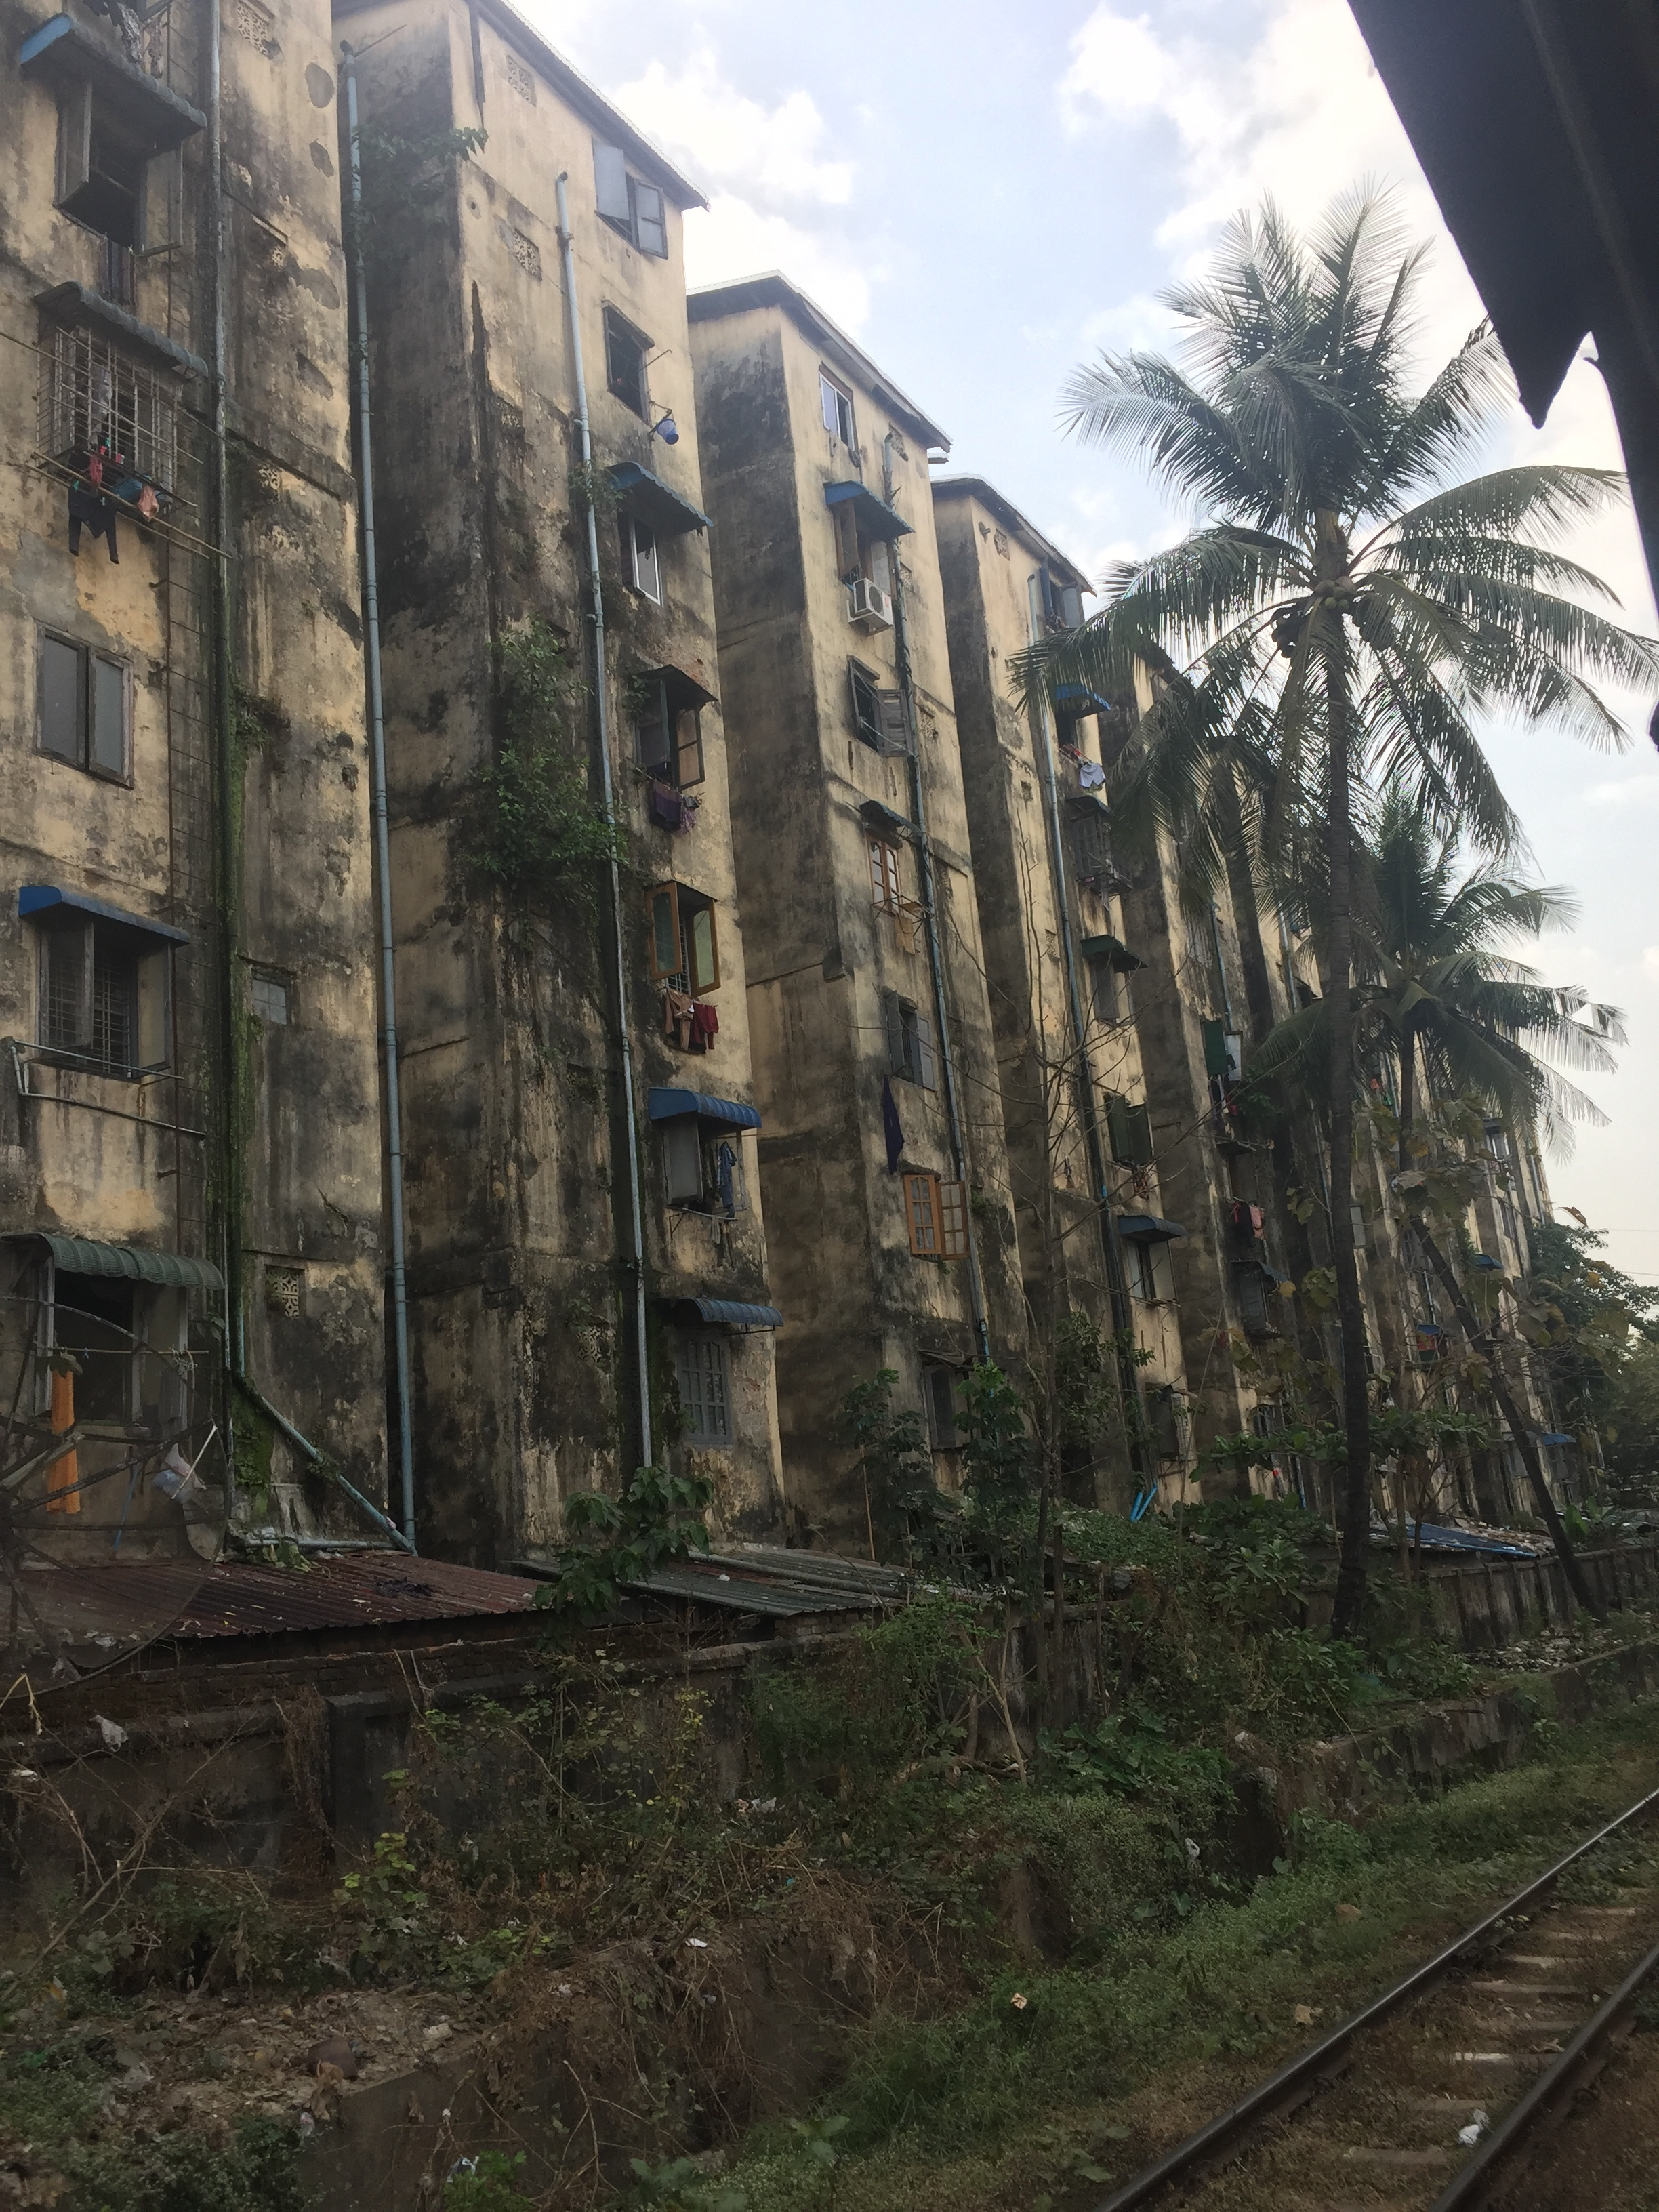 Slums, likely unkempt for years, along the railway tracks.